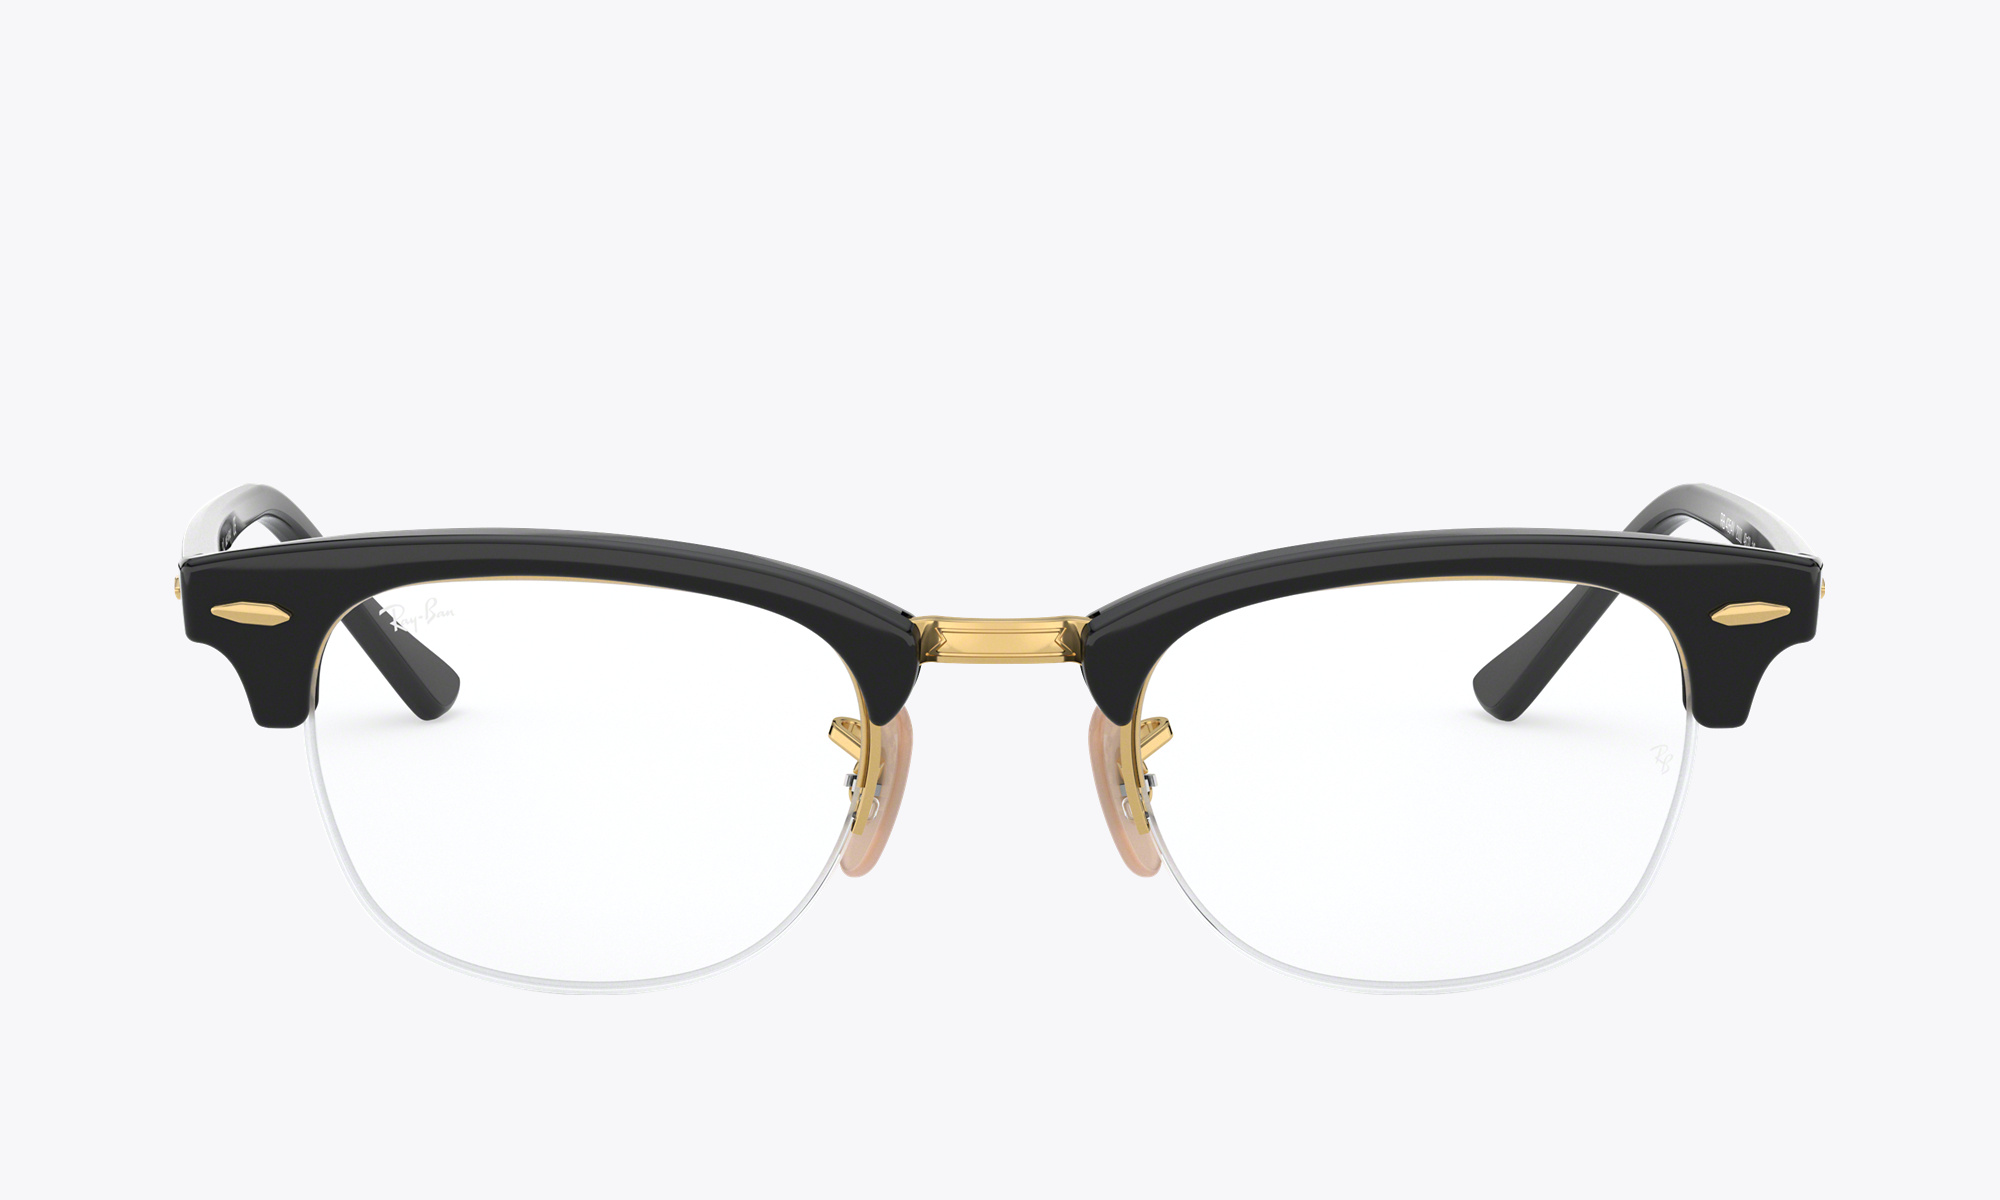 Image of Ray-Ban CLUBMASTER GAZE color Black